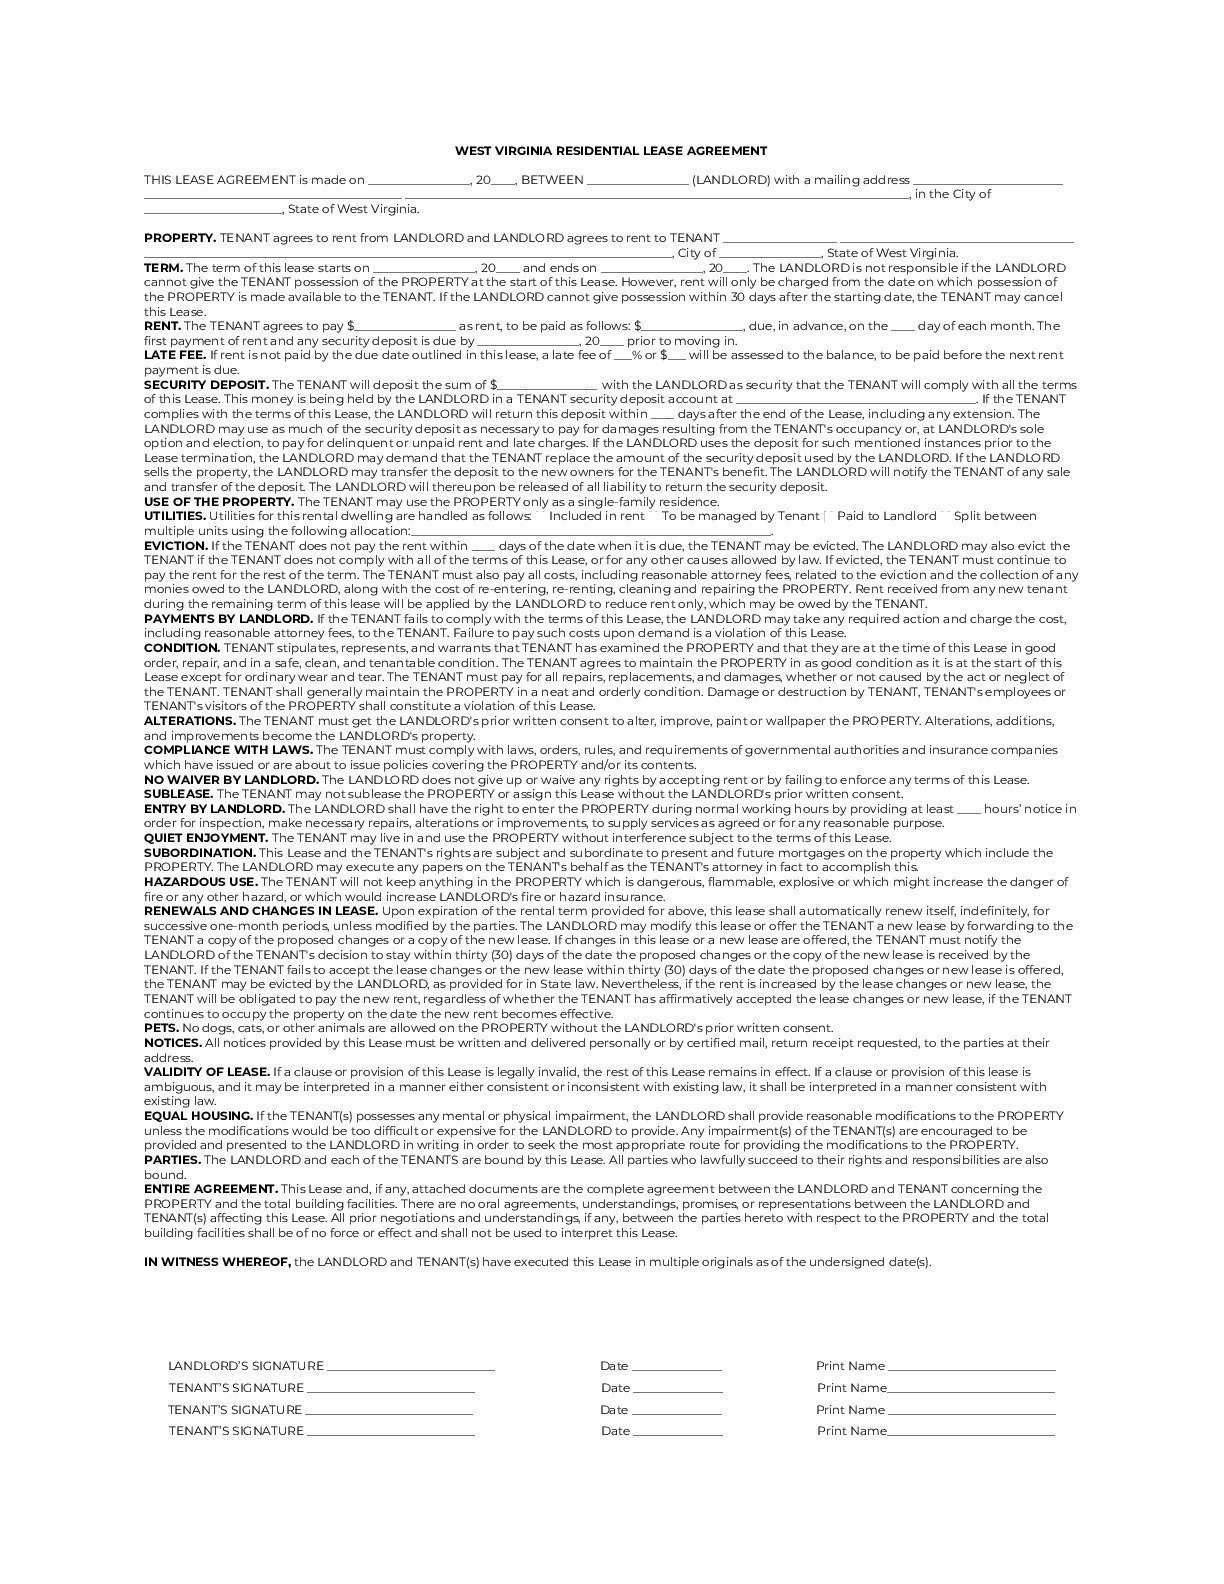 West Virginia Simple Residential Lease Agreement Template sample